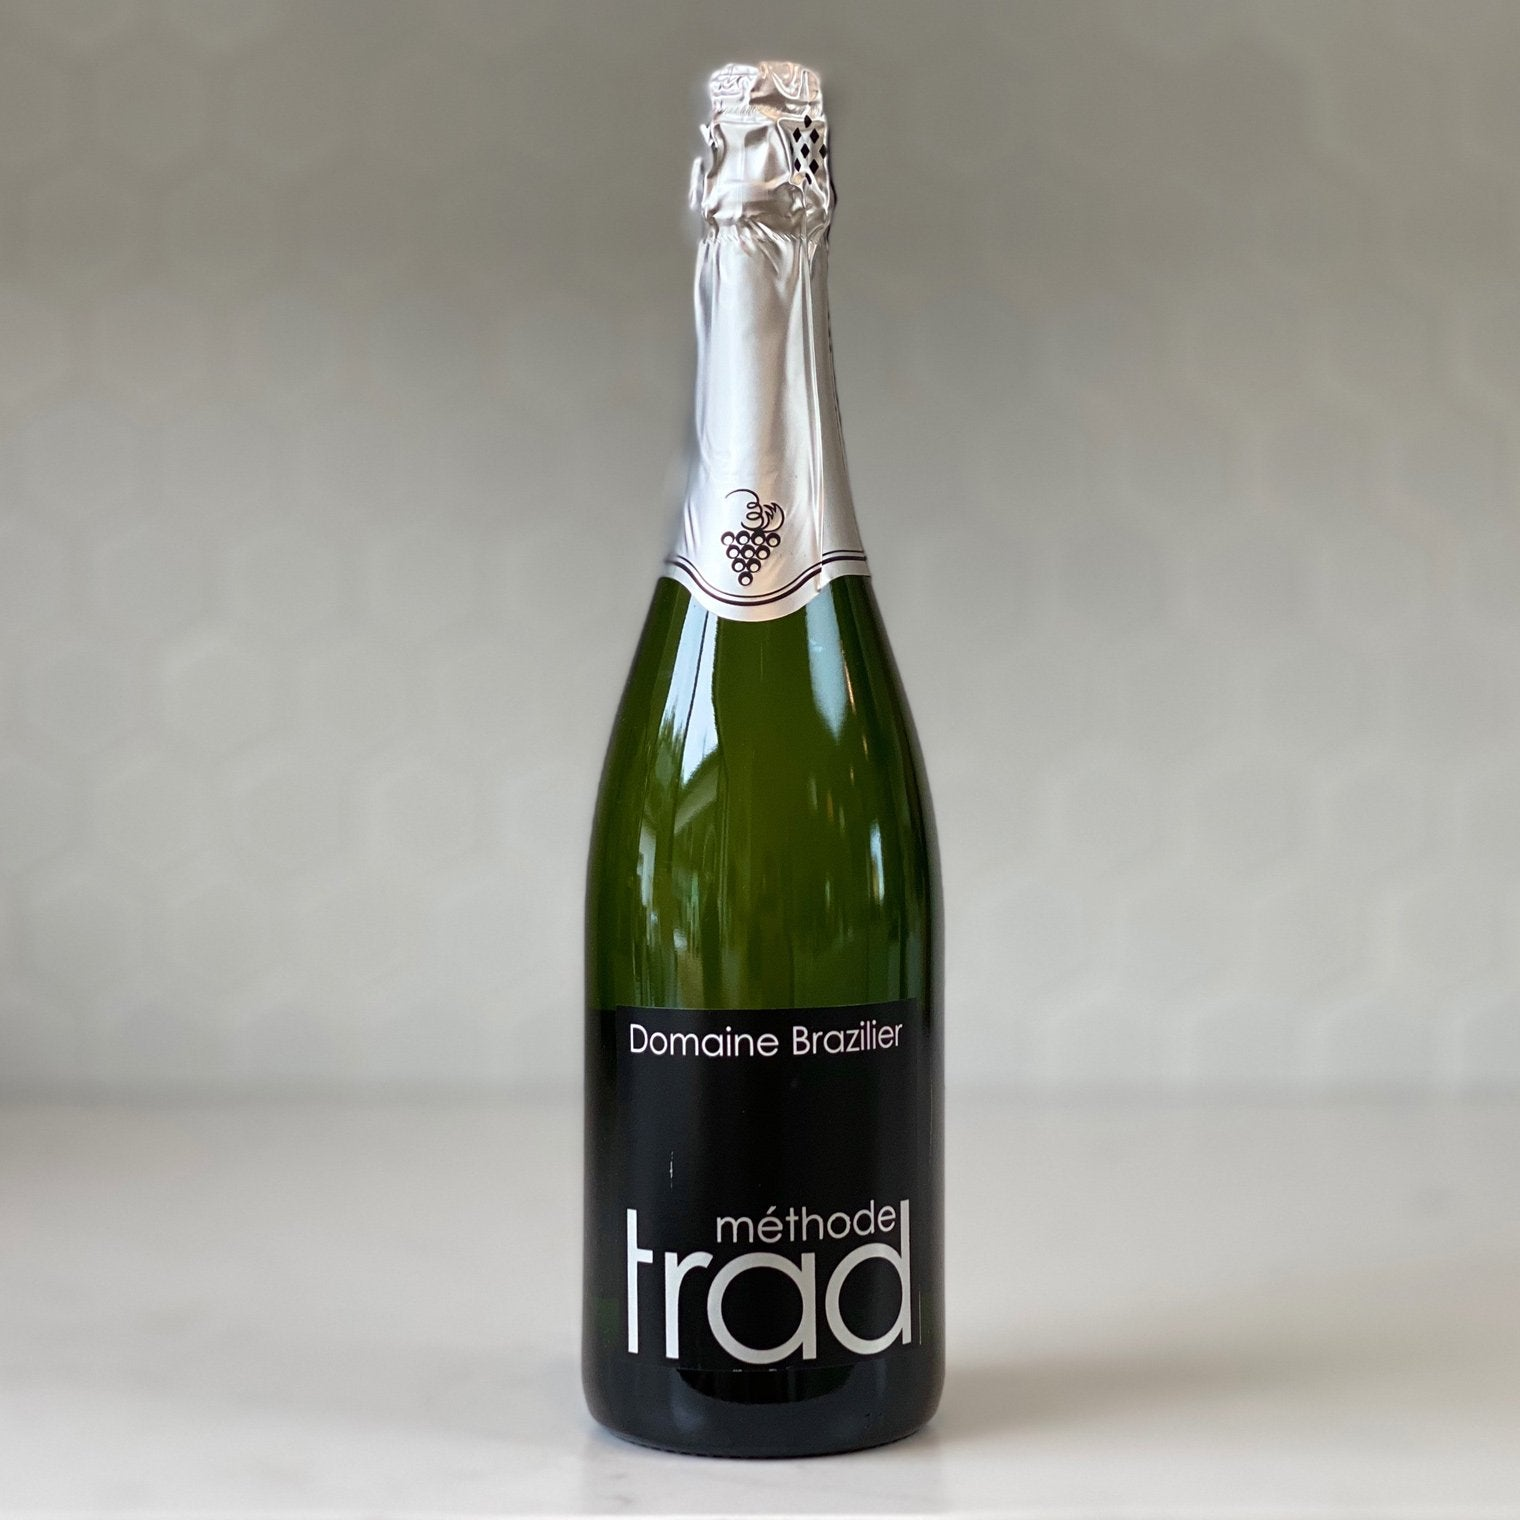 "DOMAINE BRAZILIER ""methode trad"" brut"